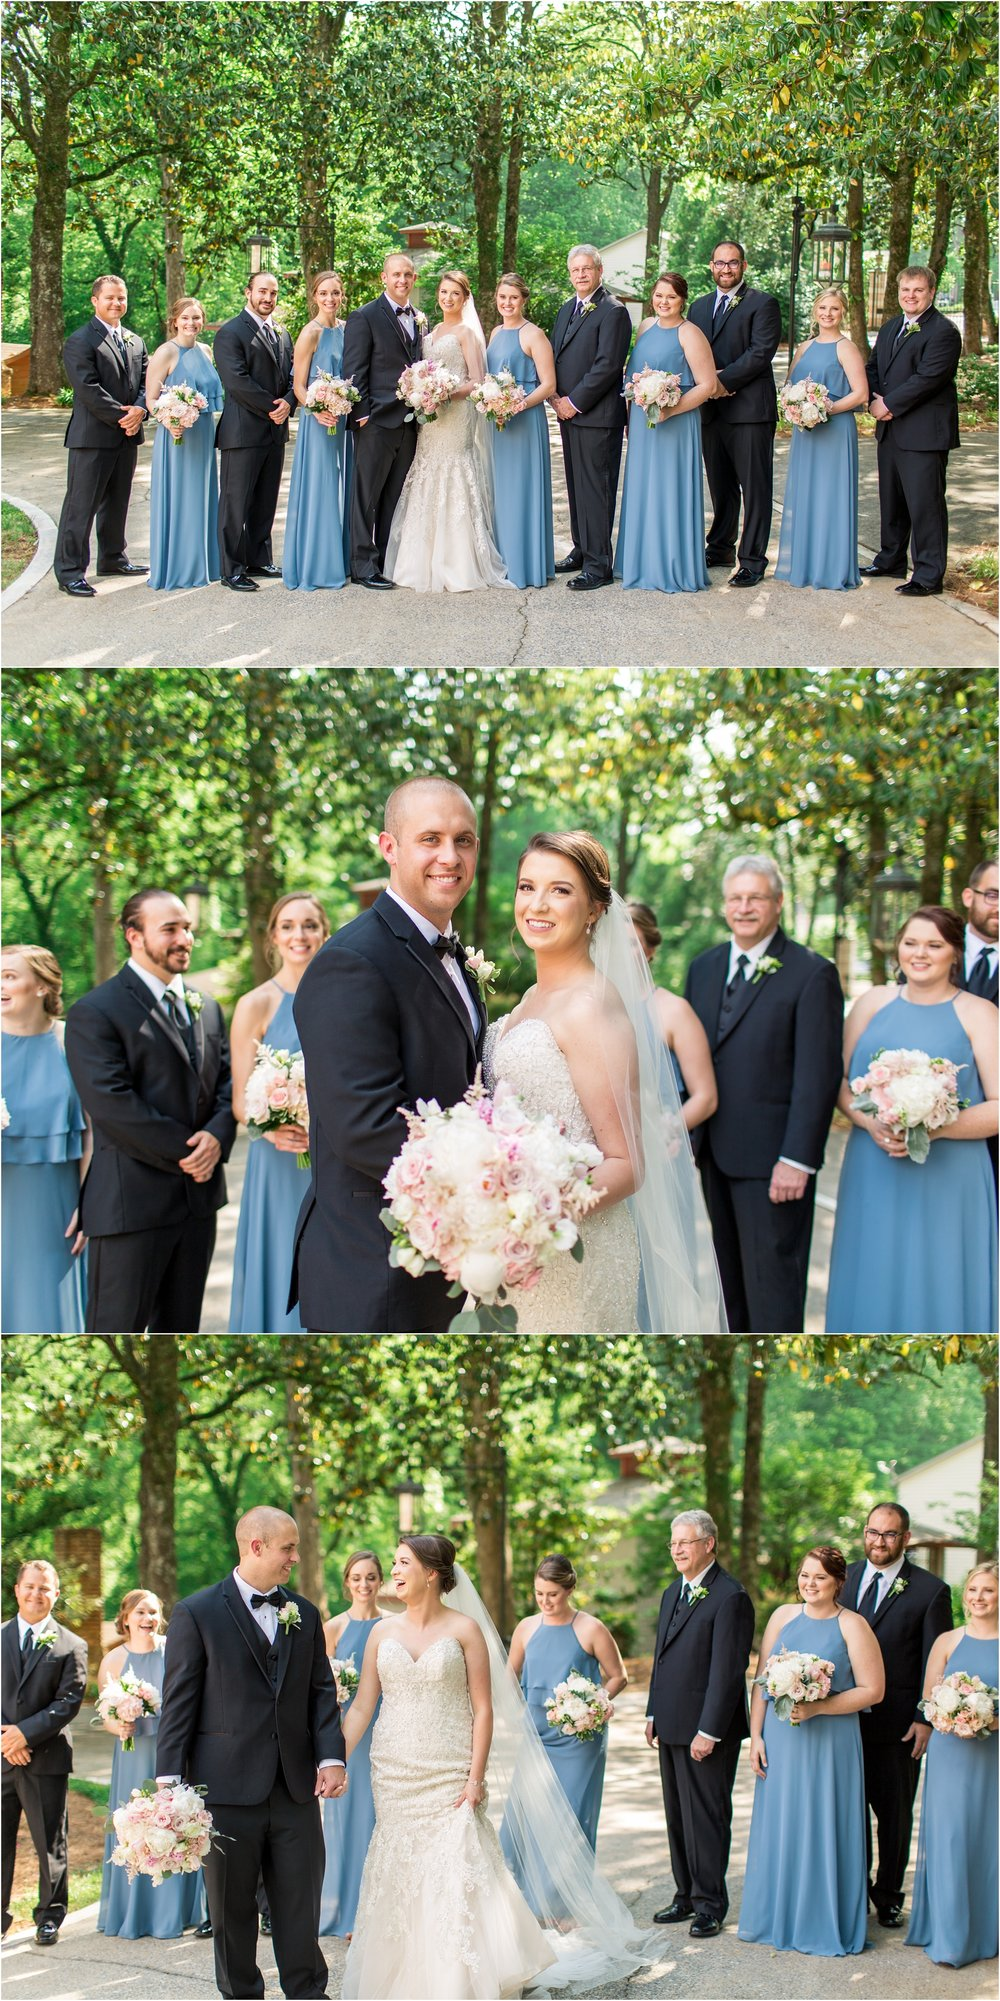 Savannah Eve Photography- Nutt Wedding- Blog-51.jpg